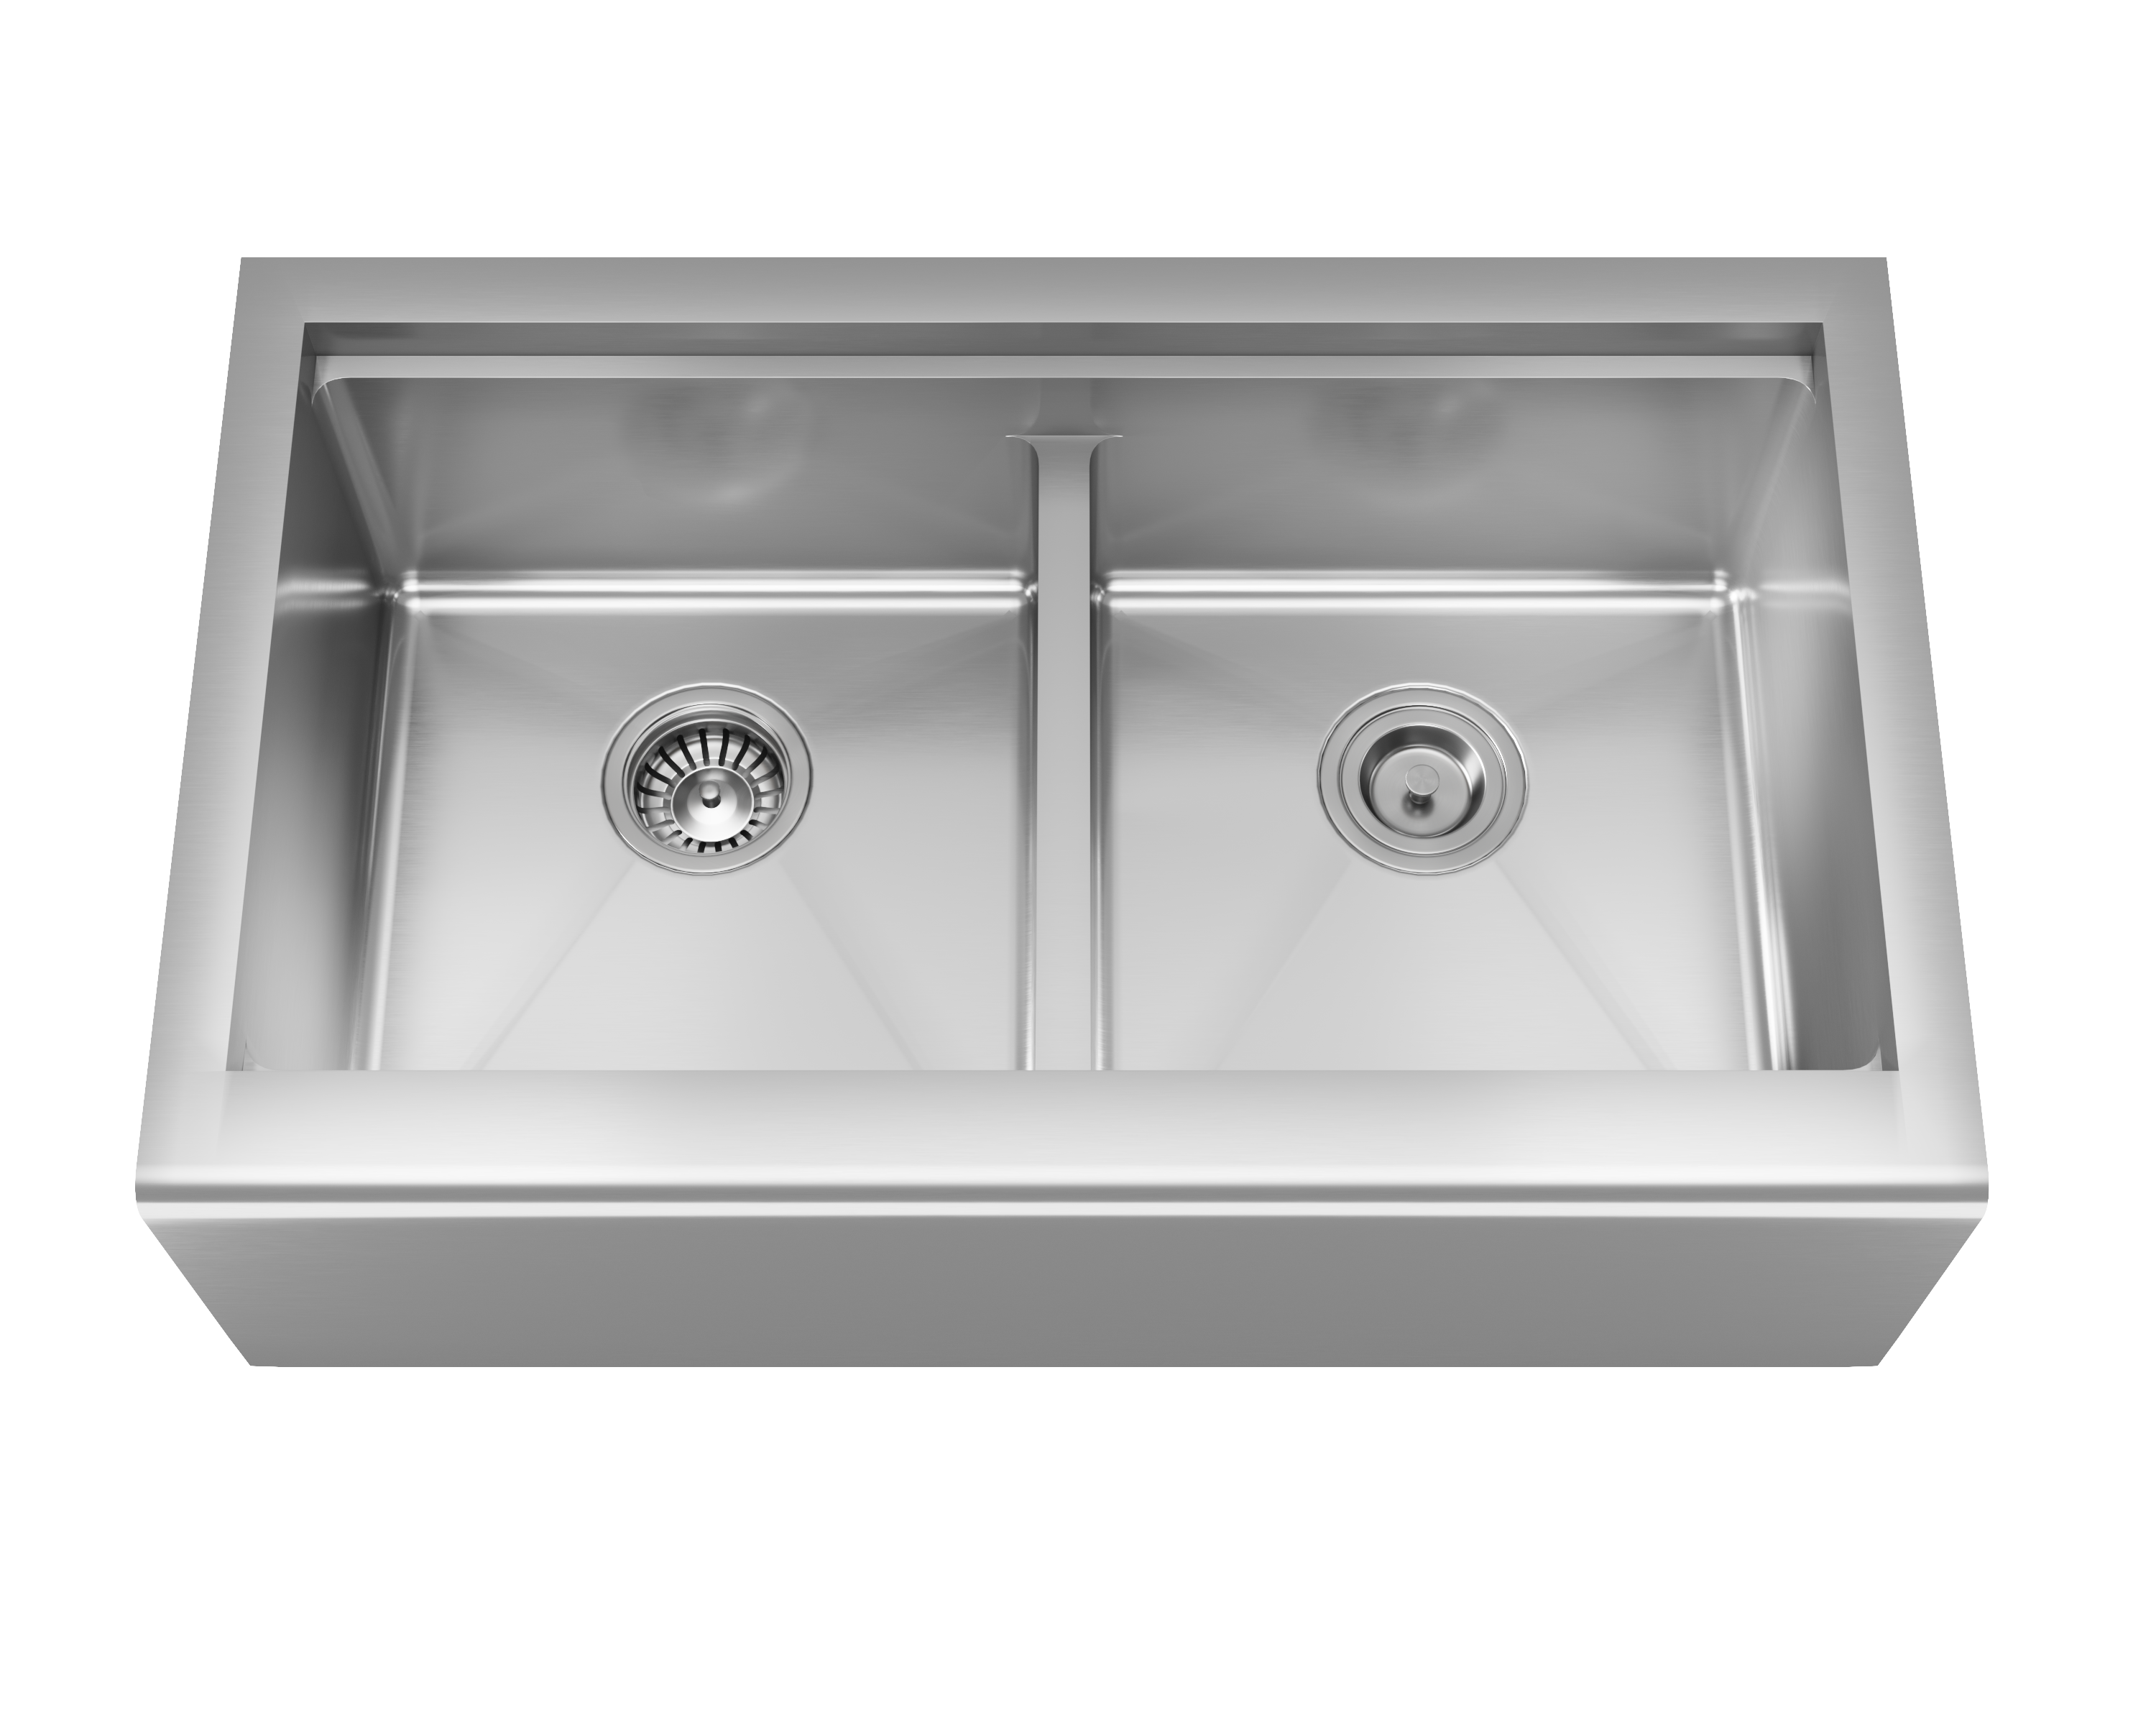 MR Direct 406-Ledge Double Equal Bowl Stainless Steel Apron Workstation Sink